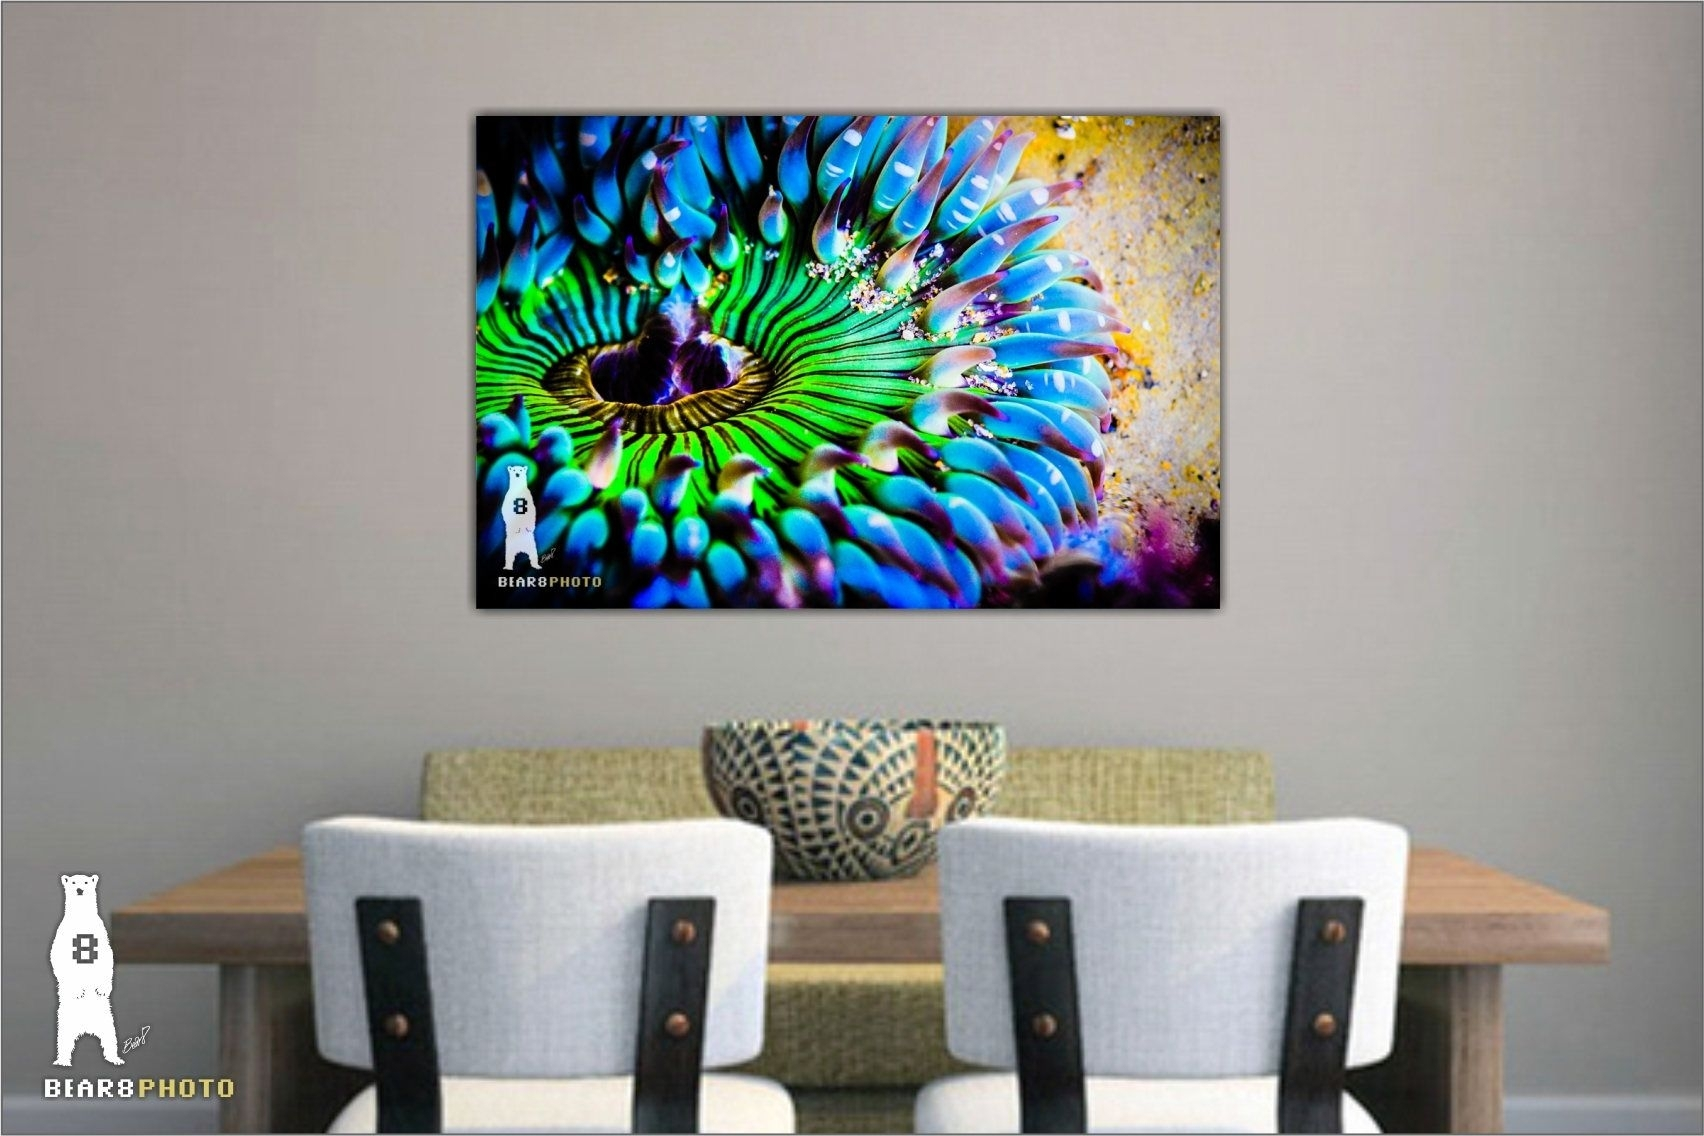 Colorful Wall Art, Bright Wall Art, Sea Life Prints, Bold And Pertaining To Most Popular Colorful Wall Art (View 13 of 20)